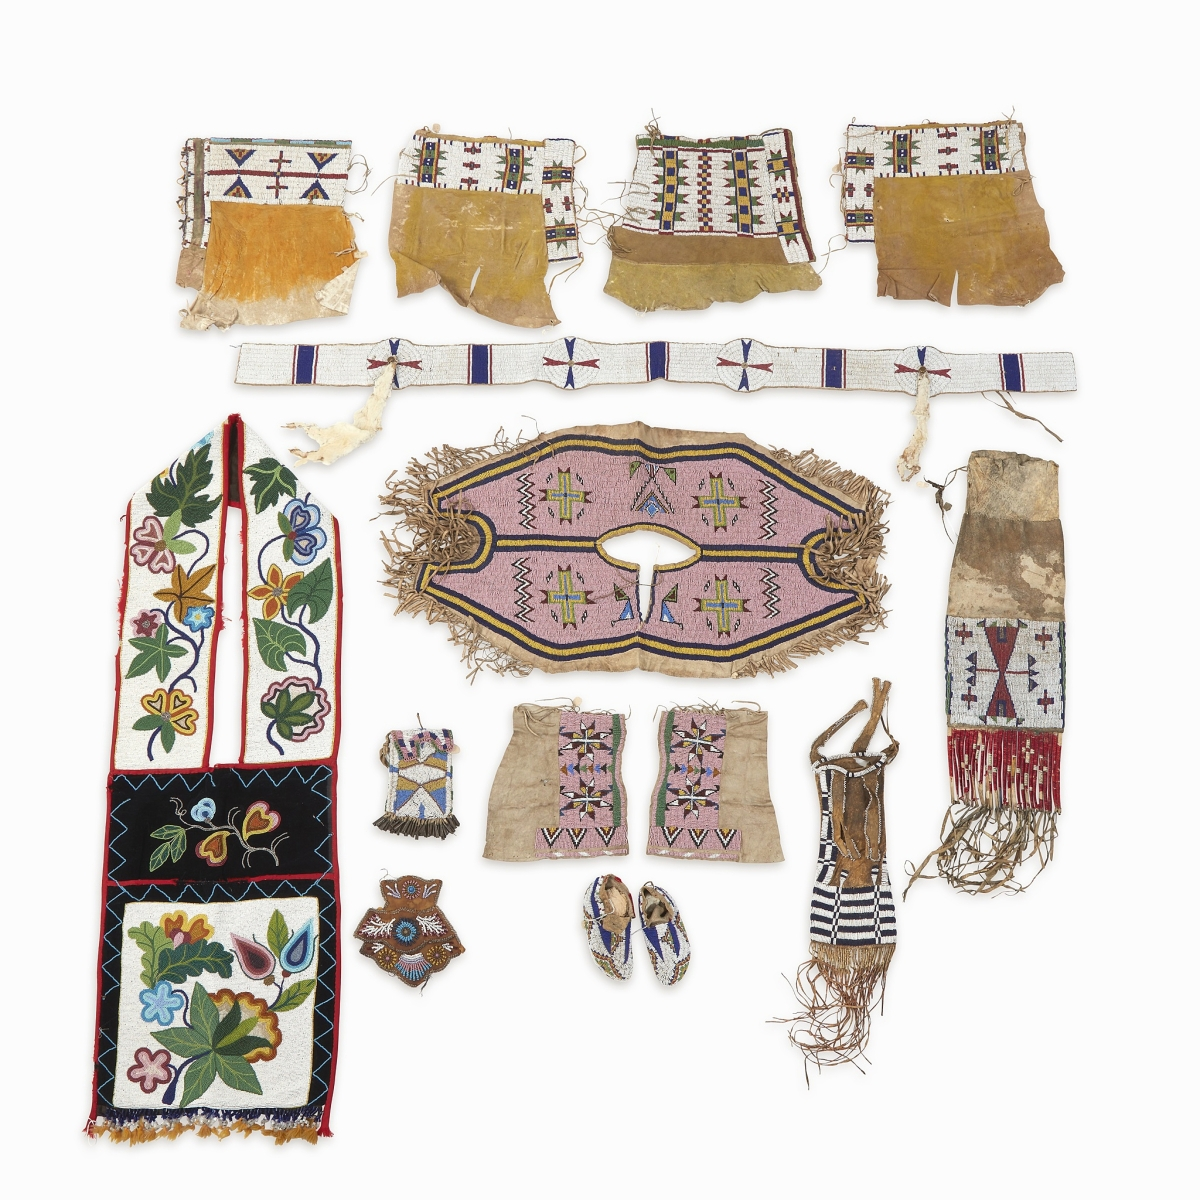 Selling for $18,900 was a collection of Native American beaded hide and cloth accessories, many of them from the Lakota Sioux. They had been acquired by Frank B. Thomas (1894-1984) in the late 1940s-early 1950s at Grove Park Lodge, part of the Bigwin Inn at Lake of Bays, Muskoka, Ontario.